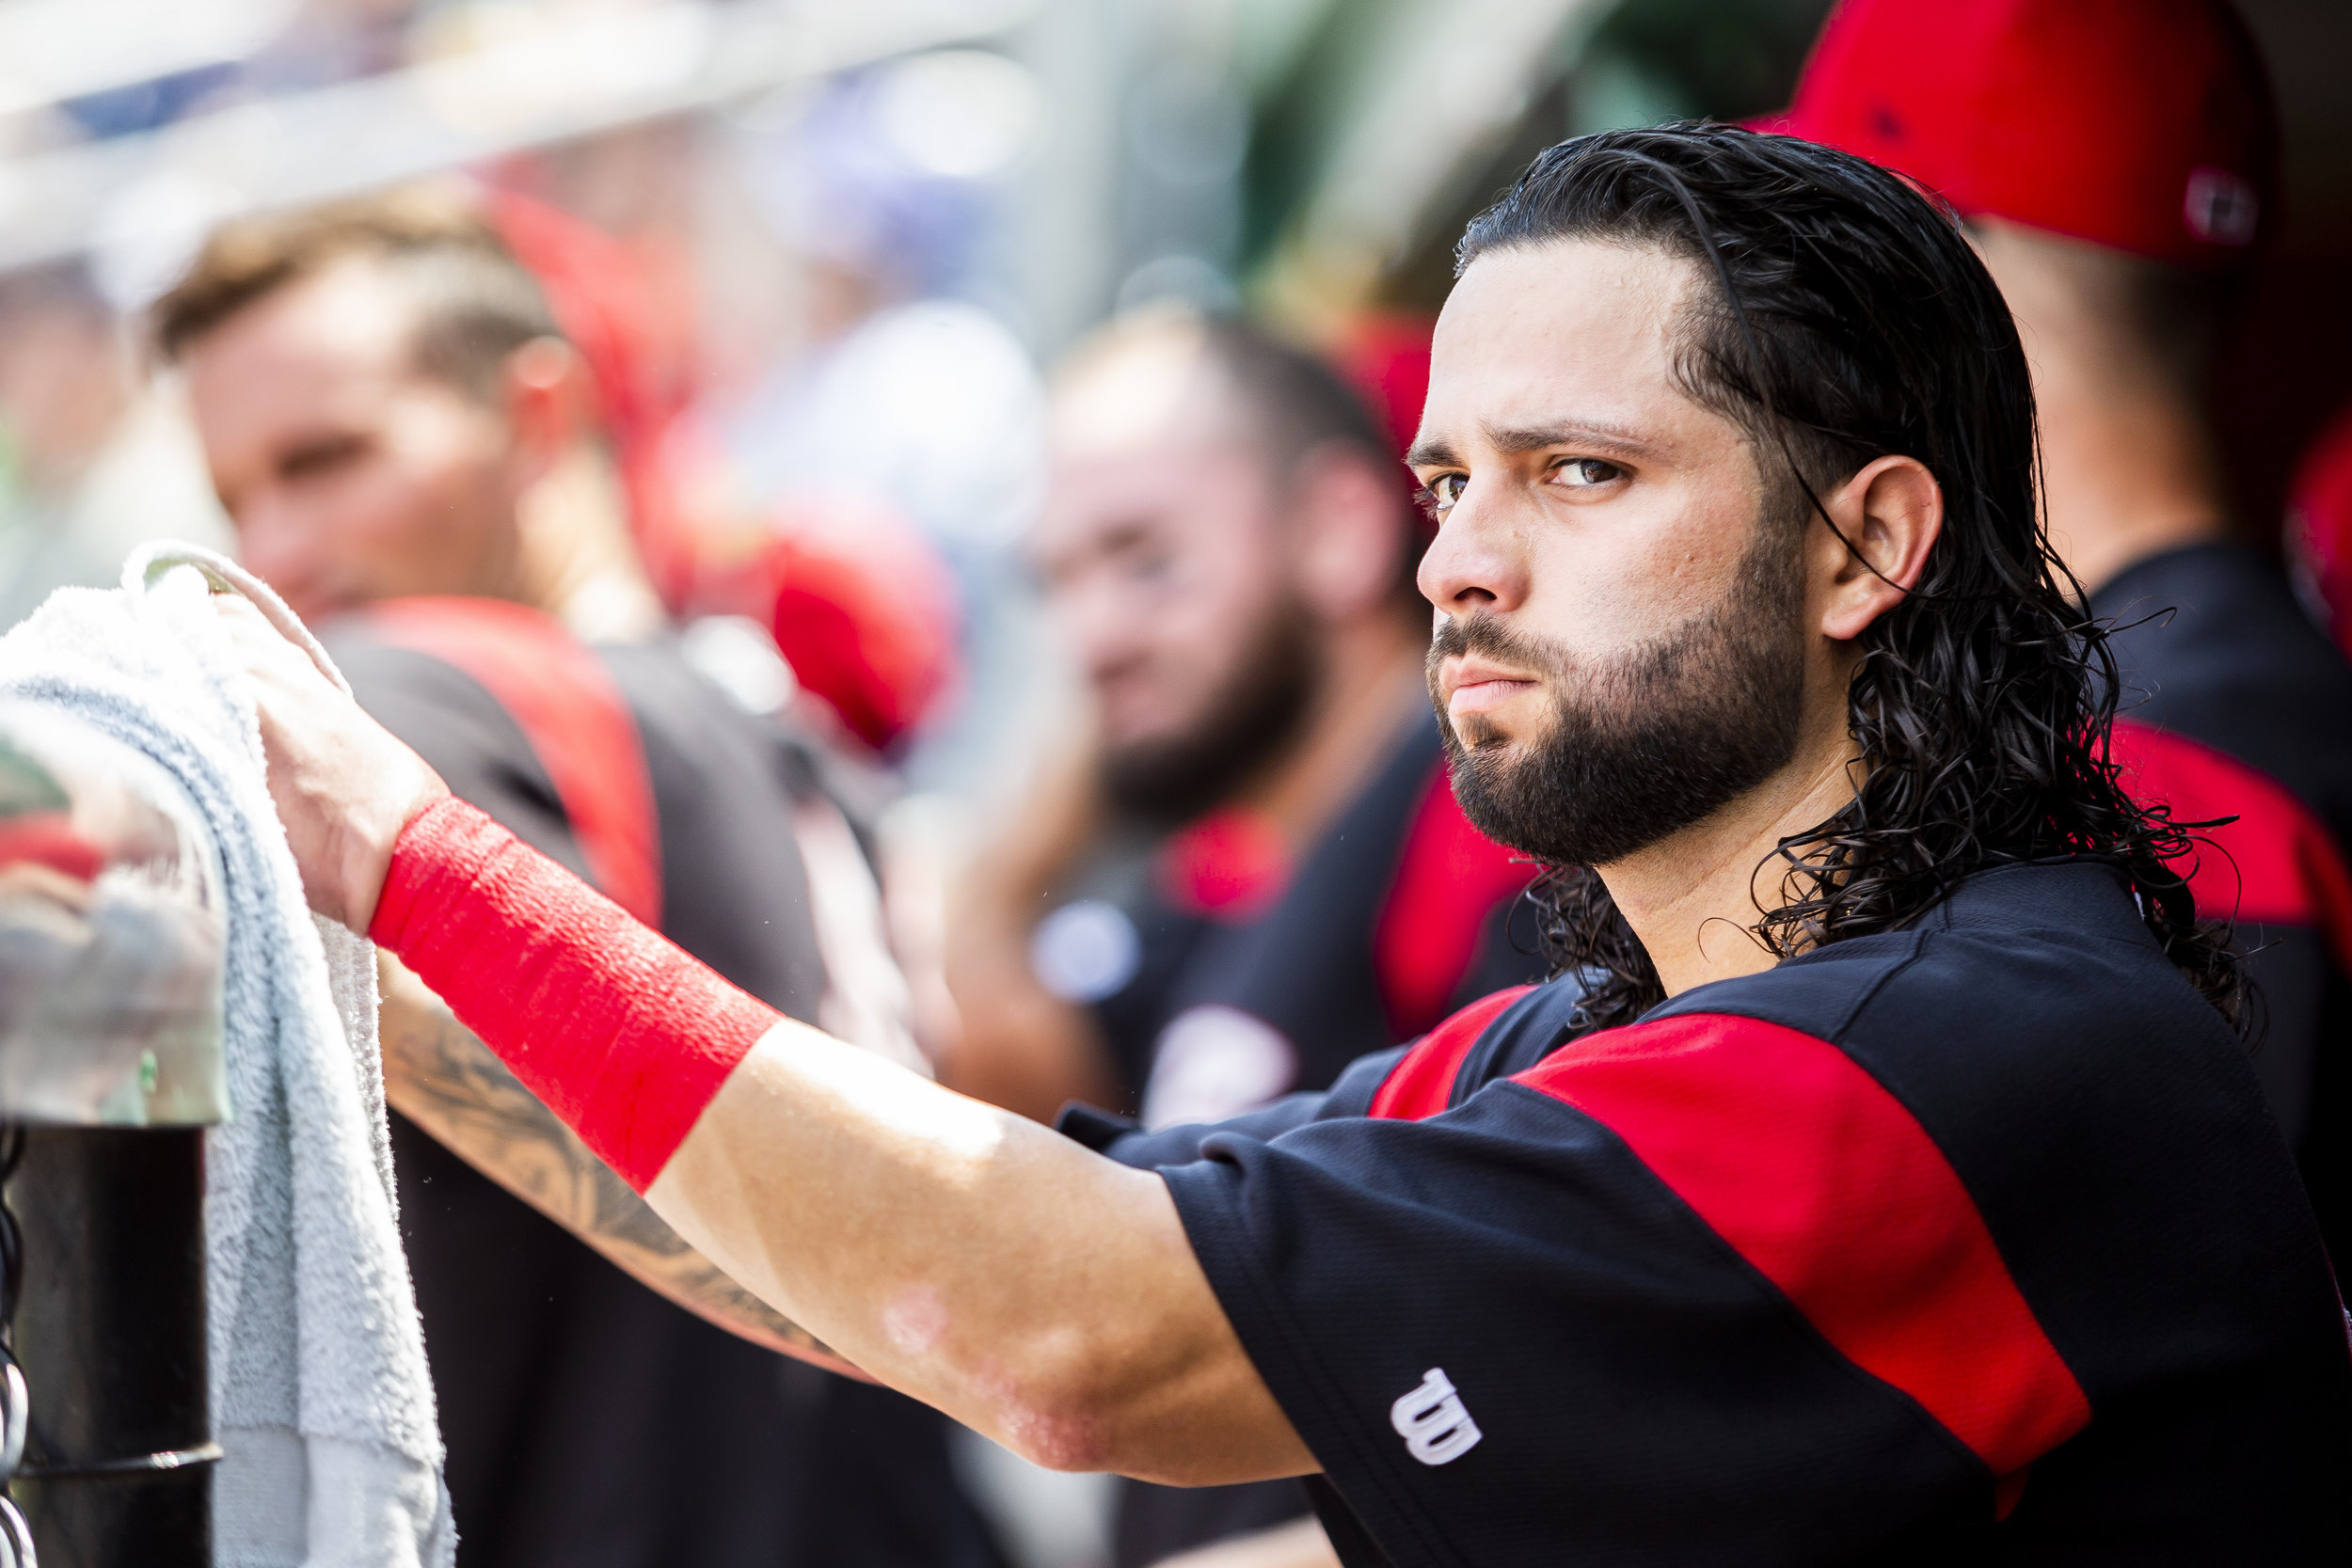 PORTLAND, ME - AUGUST 05:  C.J Hinojosa #26 of the Richmond Flying Squirrels looks at the scoreboard in the game against the Portland Sea Dogs on August 5, 2018, in Portland, ME at Hadlock Field. (Photo by Zachary Roy/Getty Images)